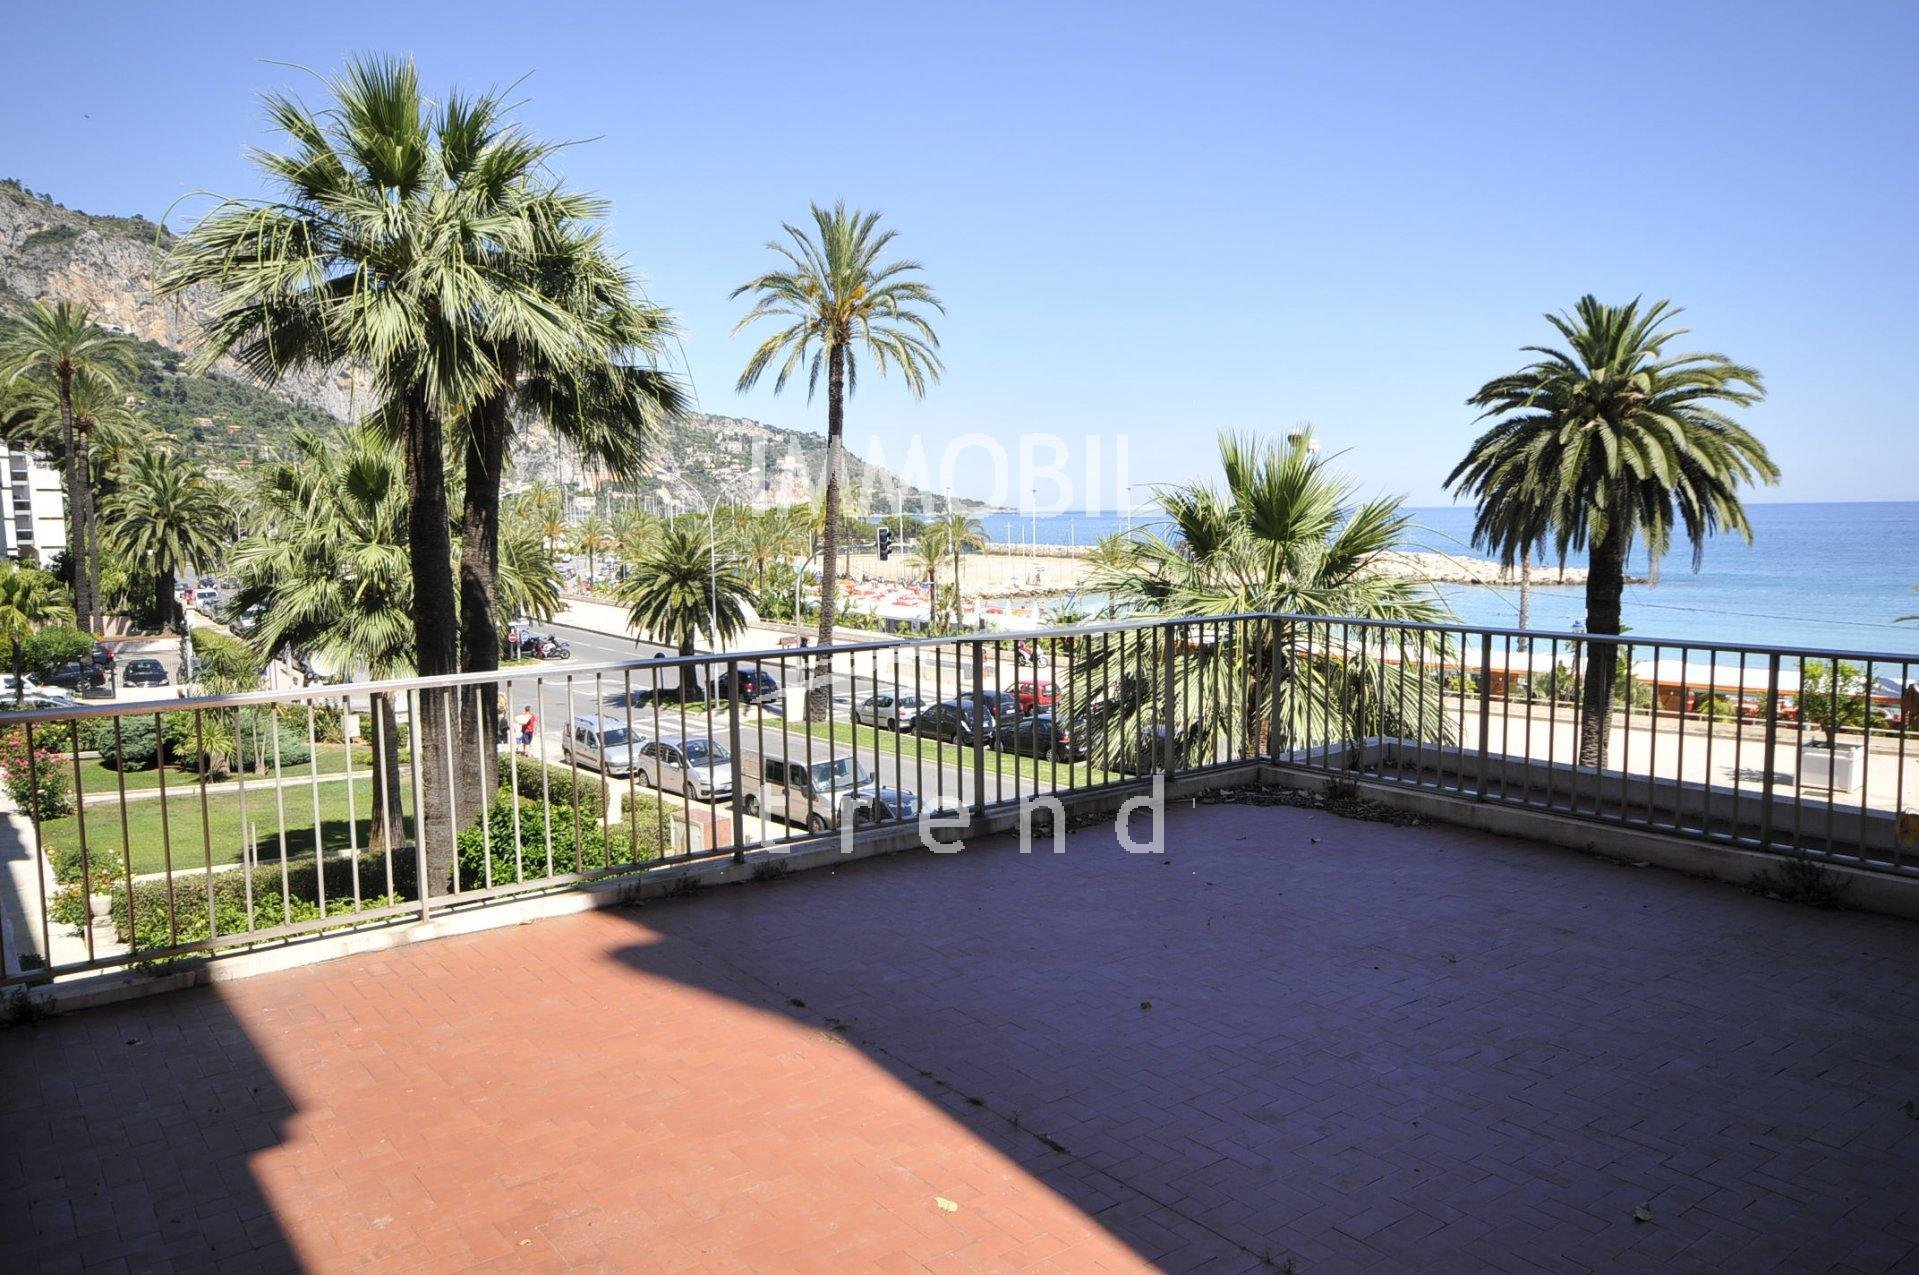 Real estate Menton - Two/three bedroom apartment with big terrace and panoramic view in a good standing seafront building